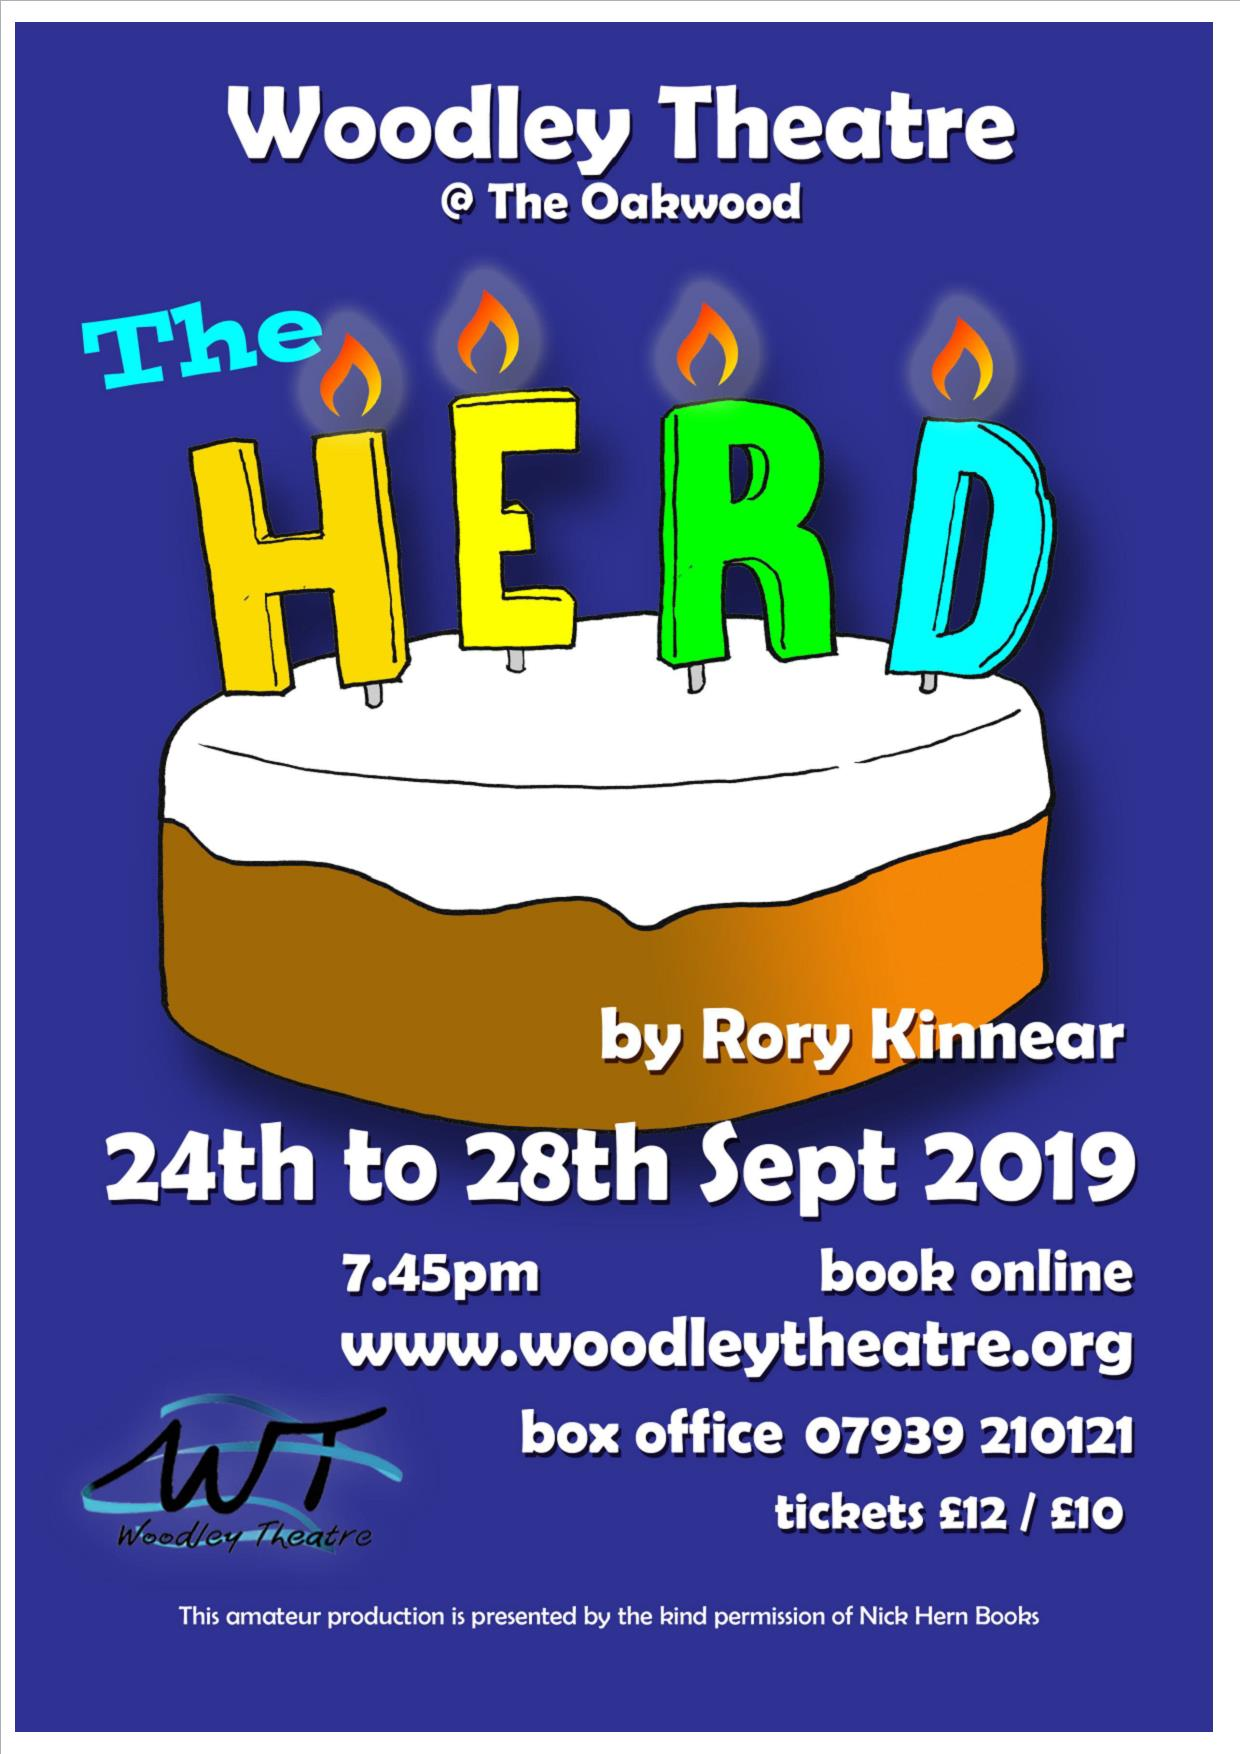 'The Herd' by Rory Kinnear banner image